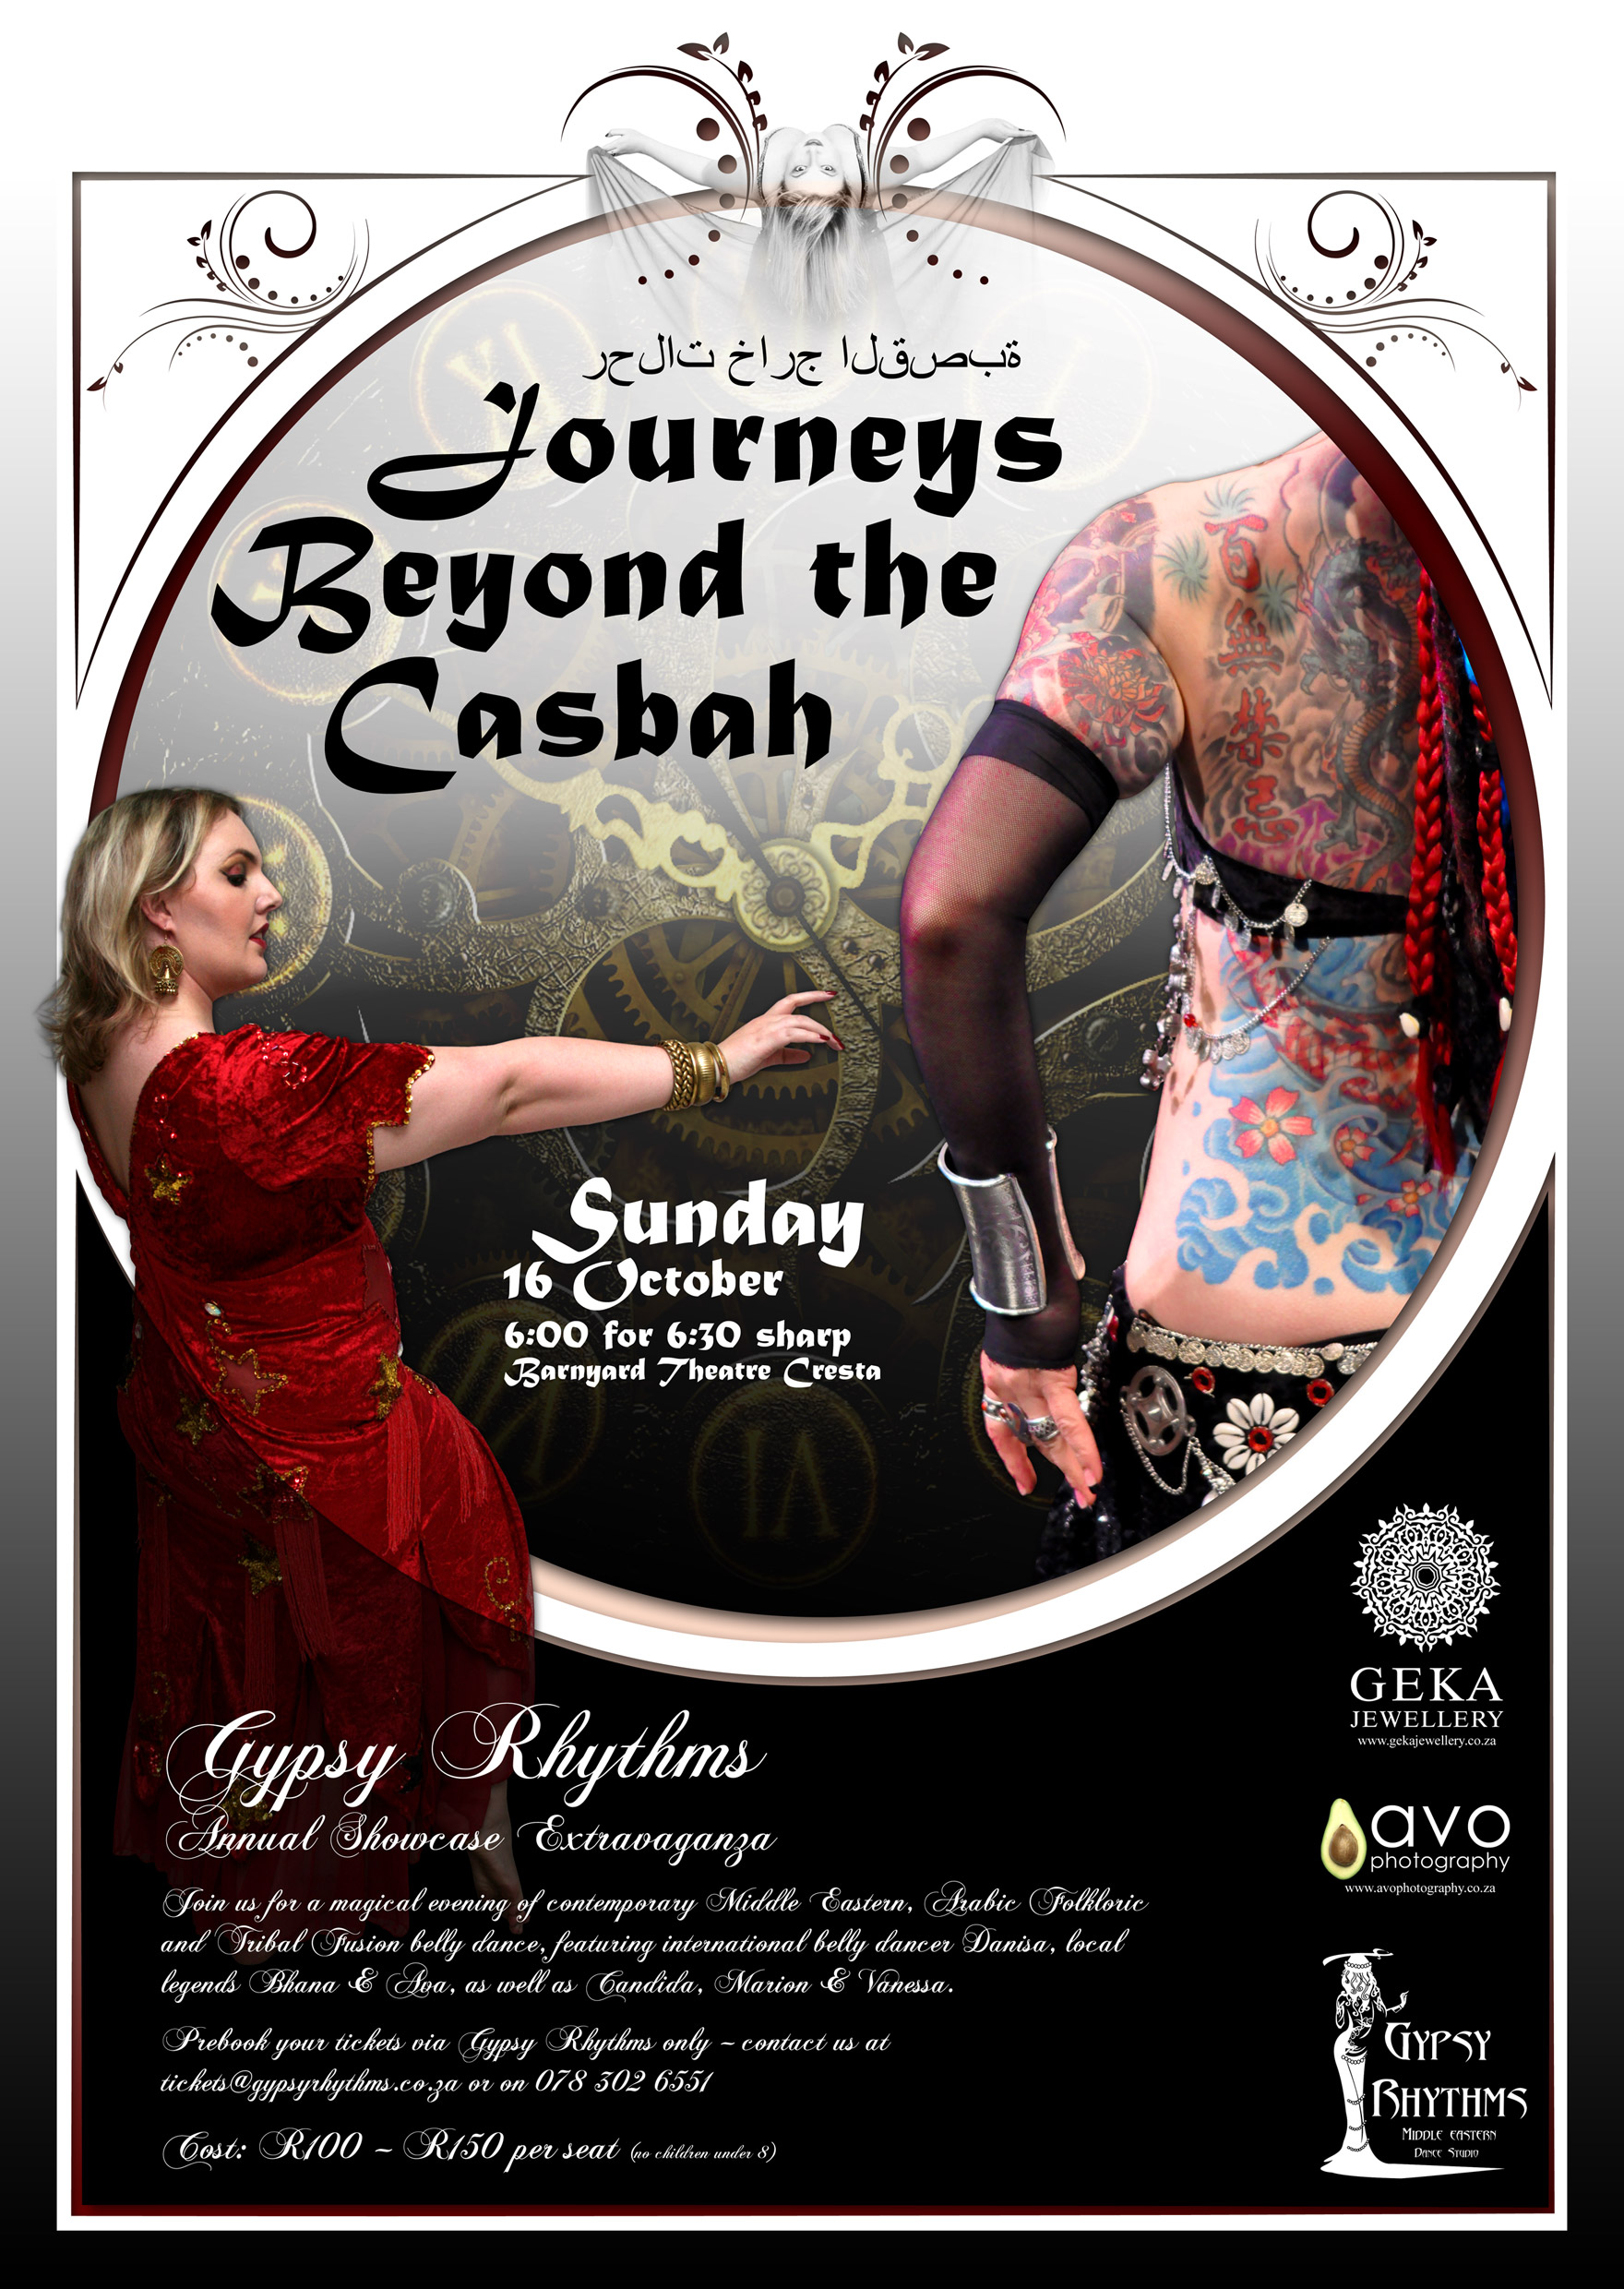 Journeys Poster 1 Journeys beyond the Casbah Showcase by Gypsy Rhythms